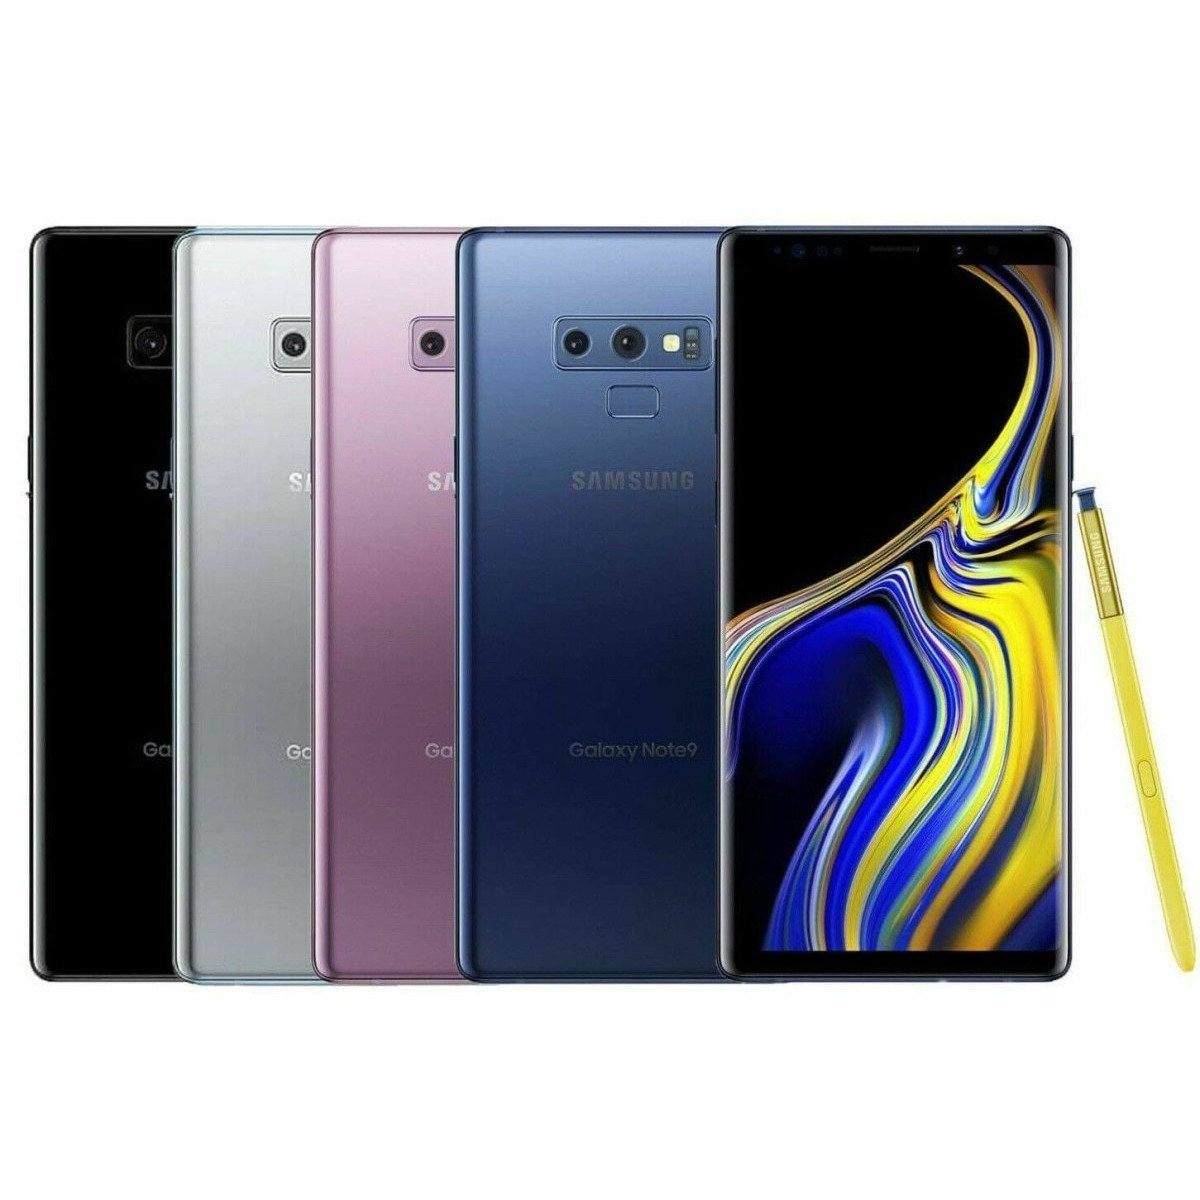 Samsung Galaxy Note9 - Fix Or Cell Now Device Shop